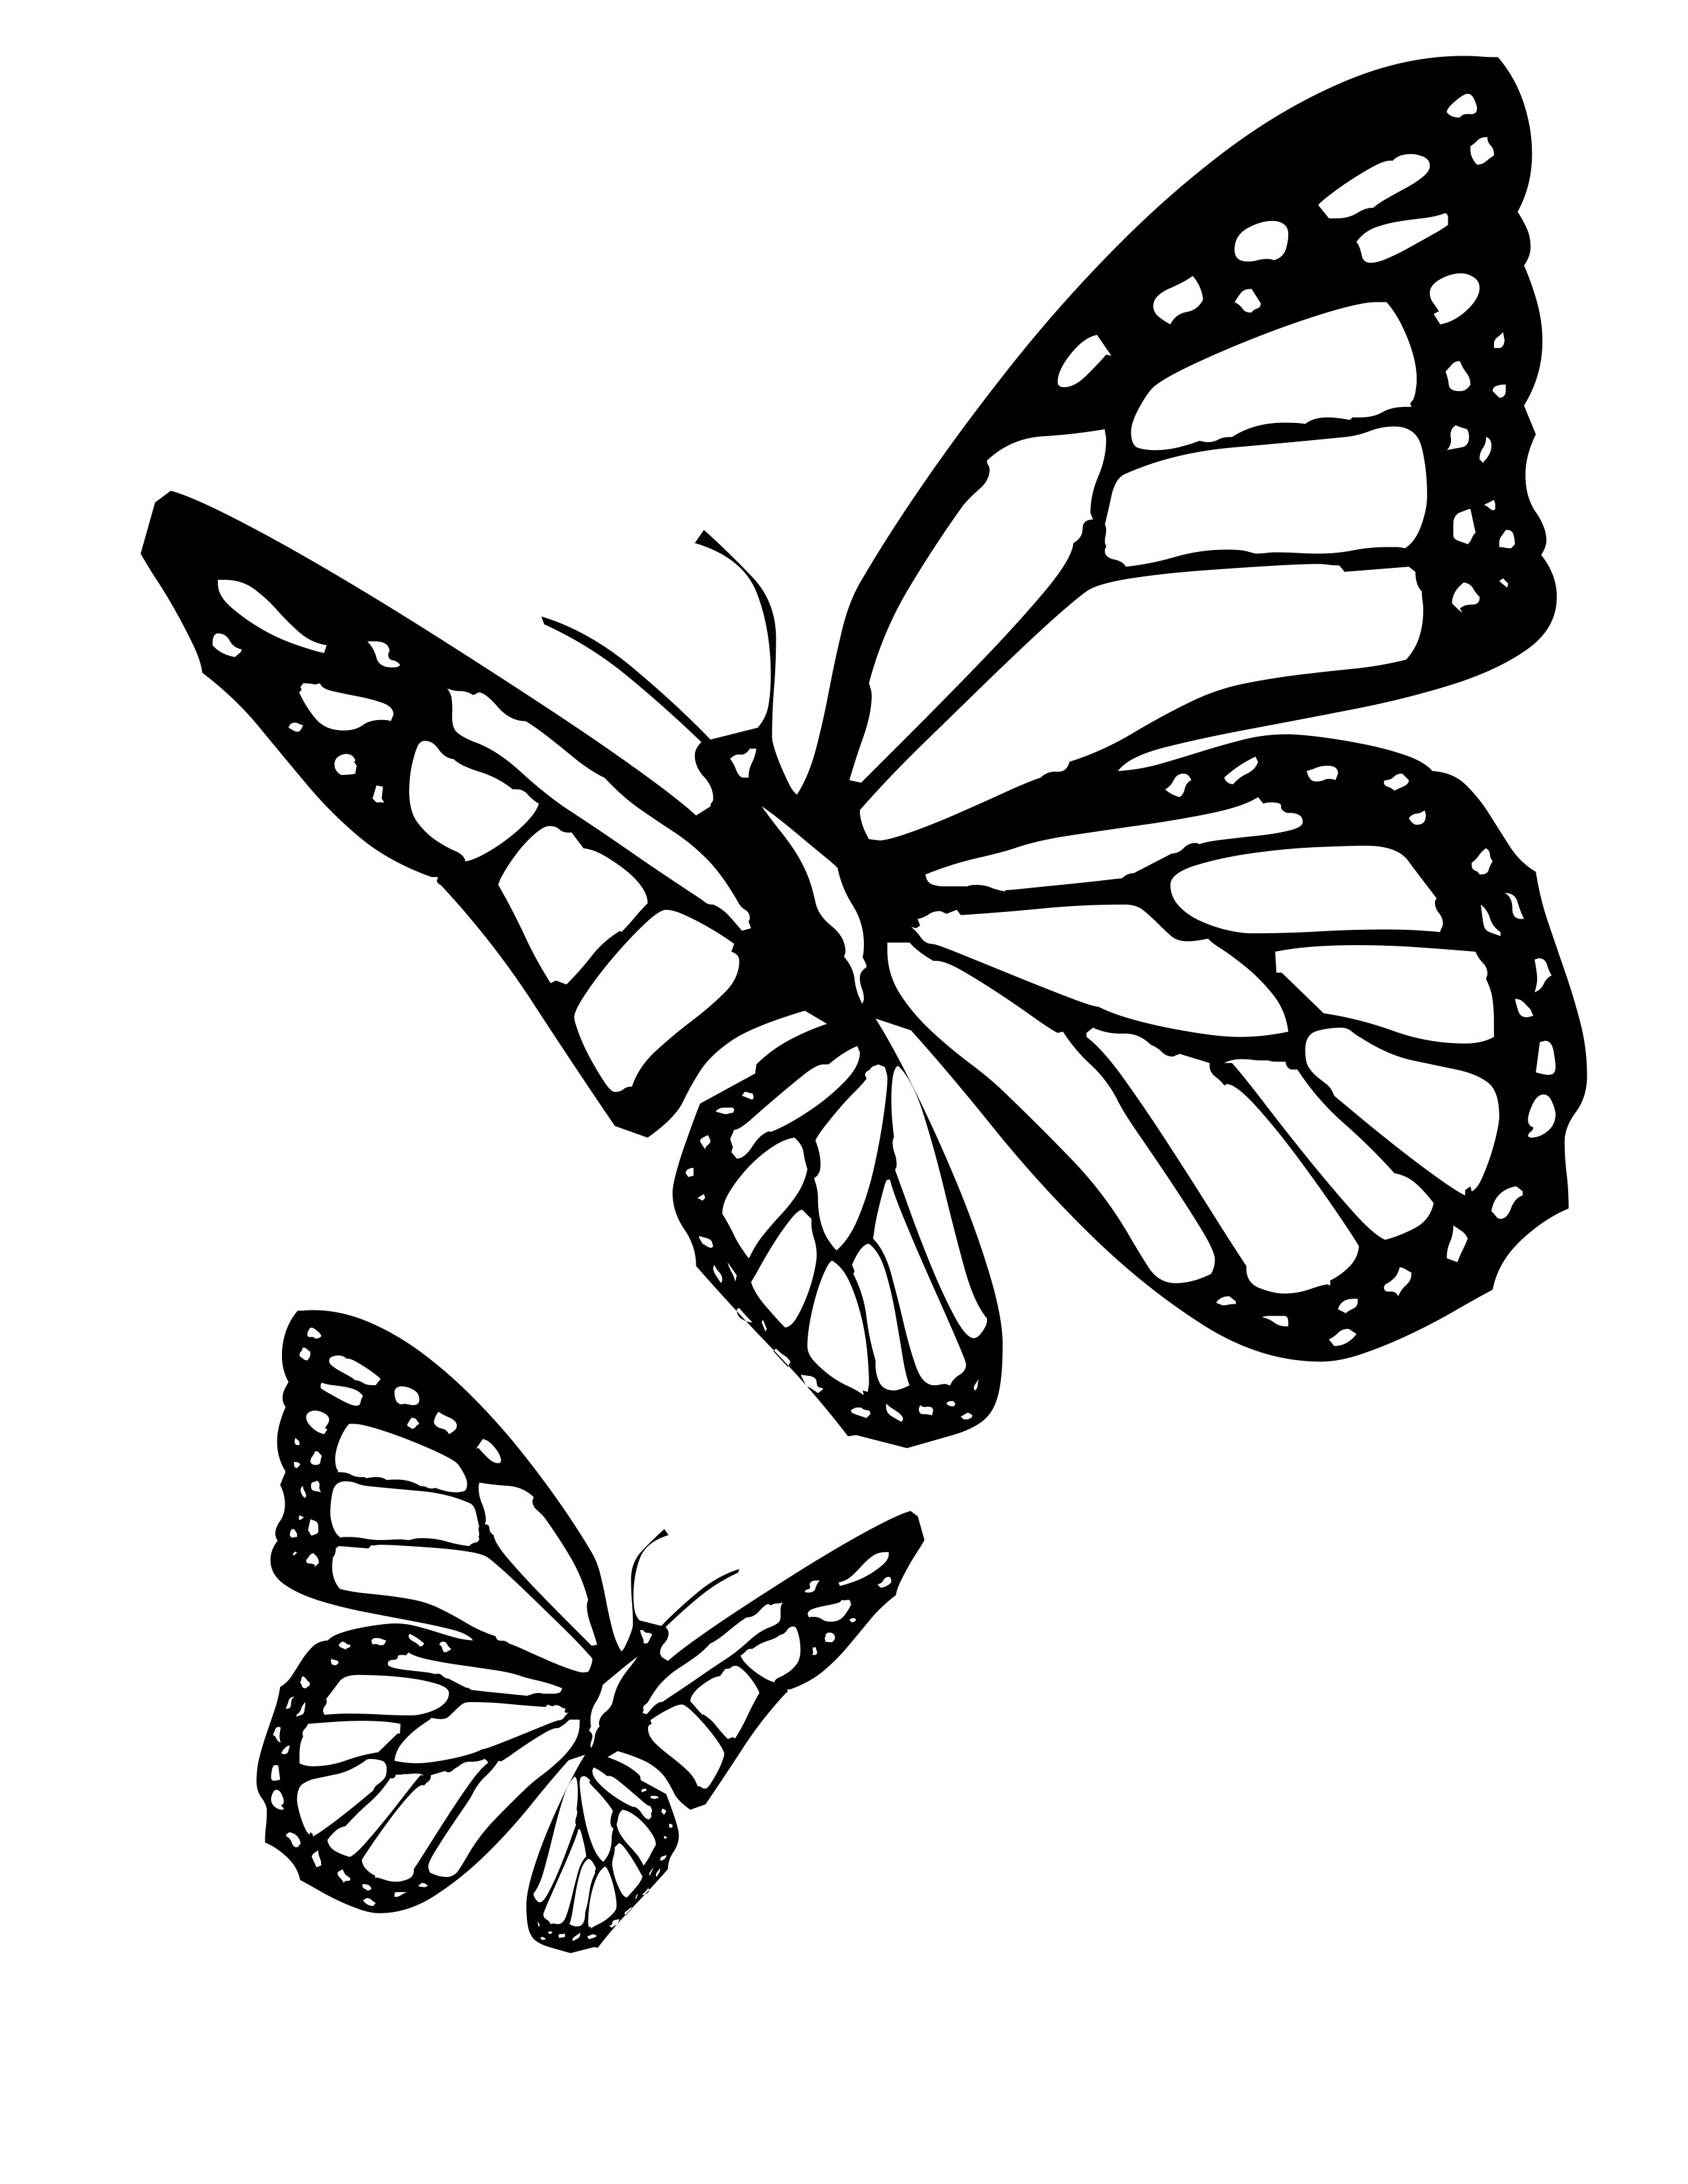 coloring pages for kids butterfly free printable butterfly coloring pages for kids for pages butterfly kids coloring